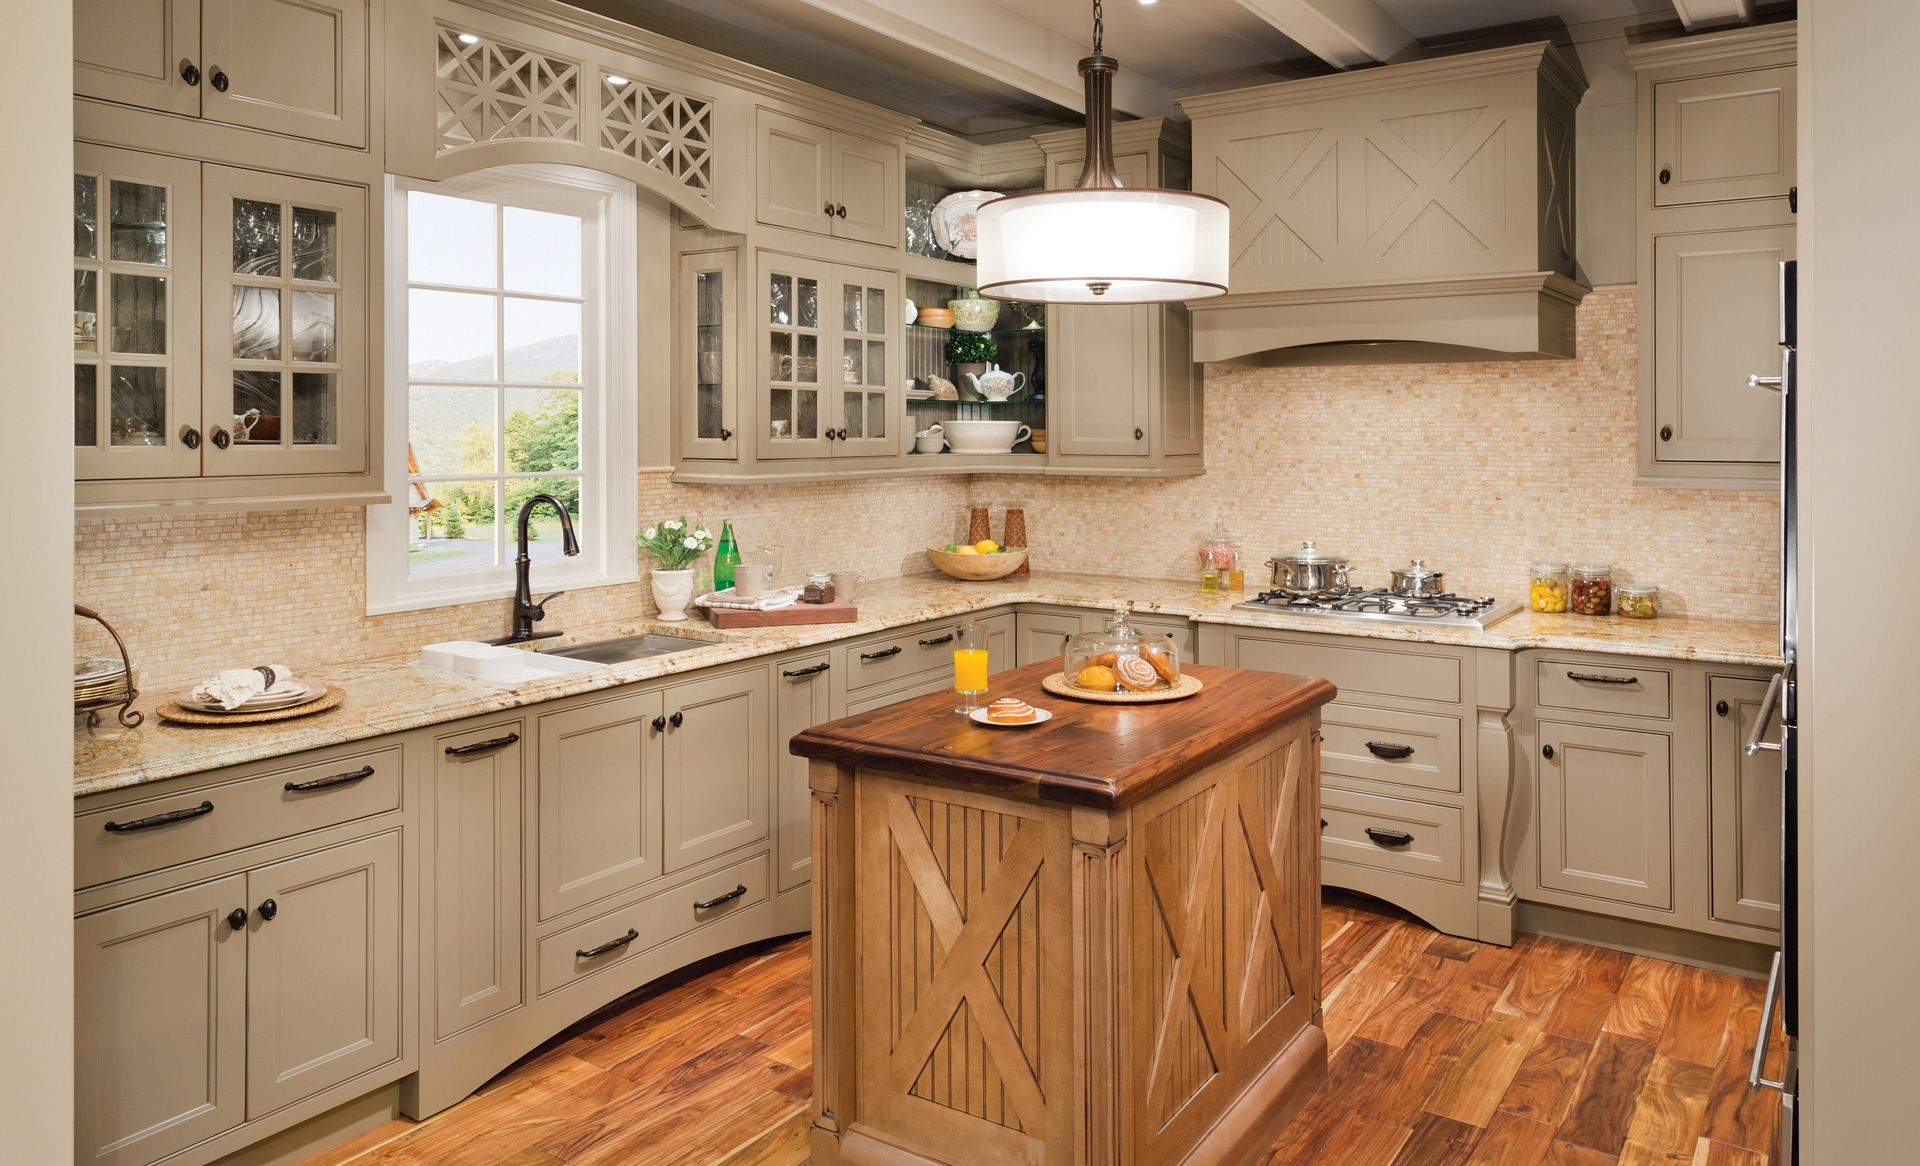 Interior Kitchen Cabinets Images Pictures cabinets new kitchen are an opportunity to give your updated look whether it